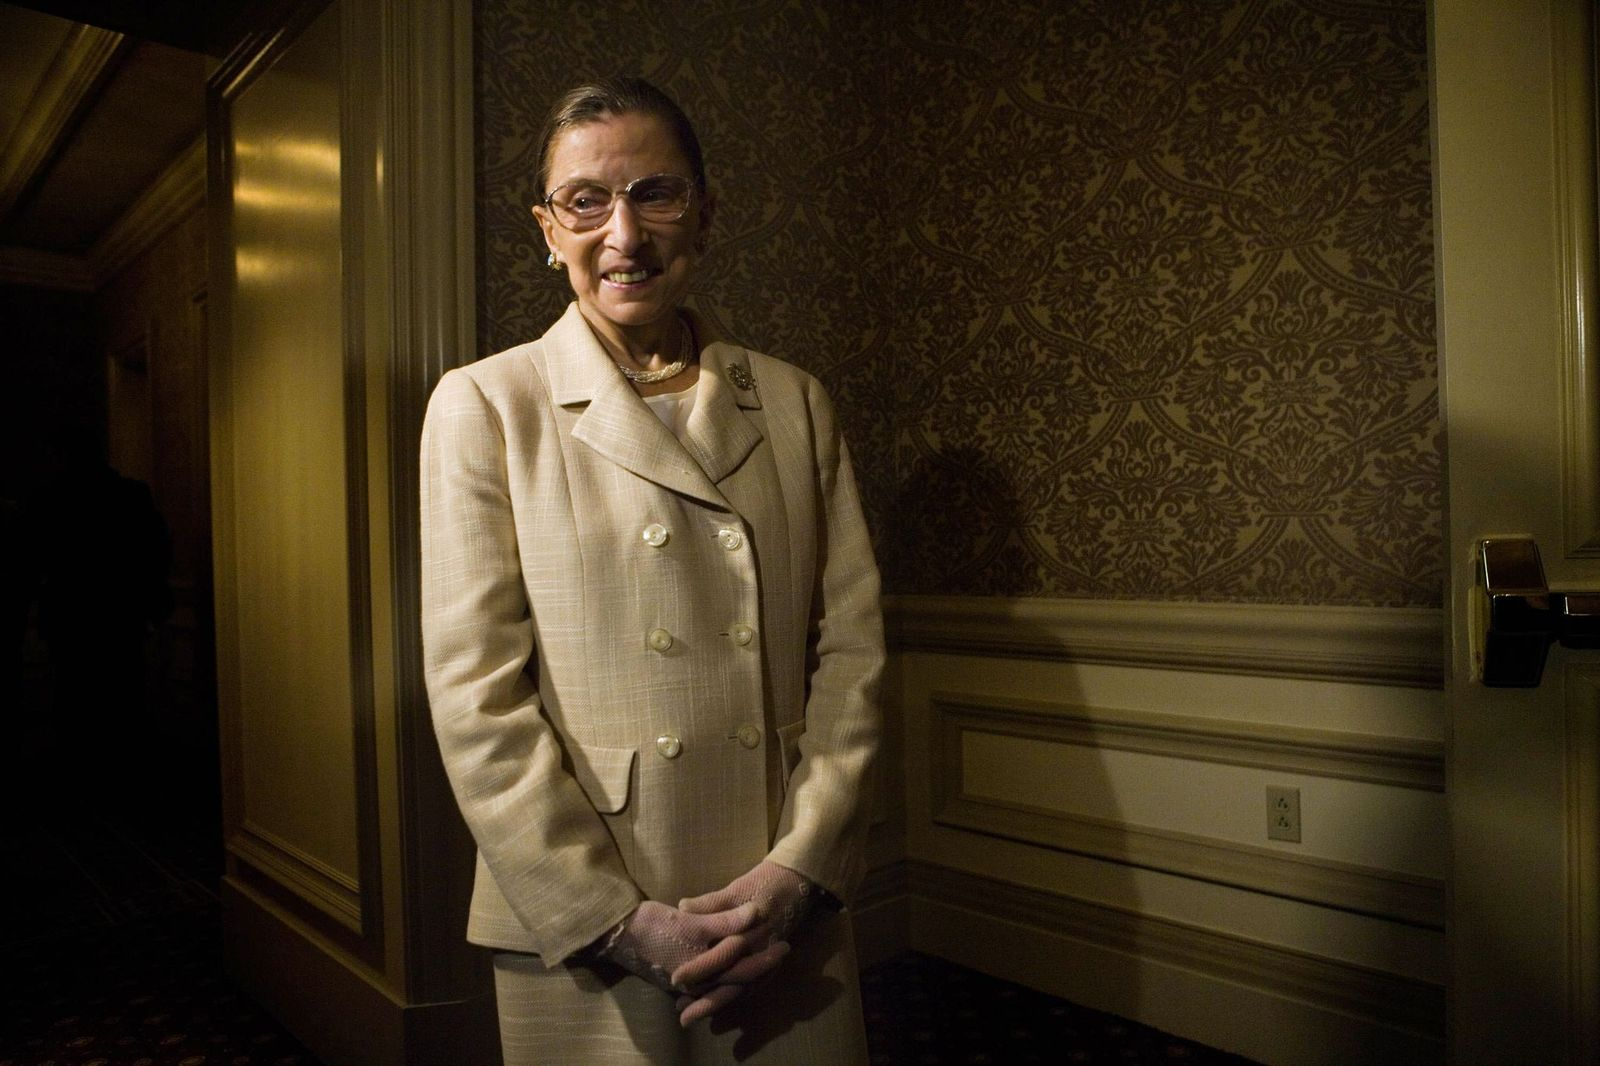 US Supreme Court Justice Ruth Bader Ginsburg on May 8, 2006, in Washington, D.C. | Photo: Getty Images